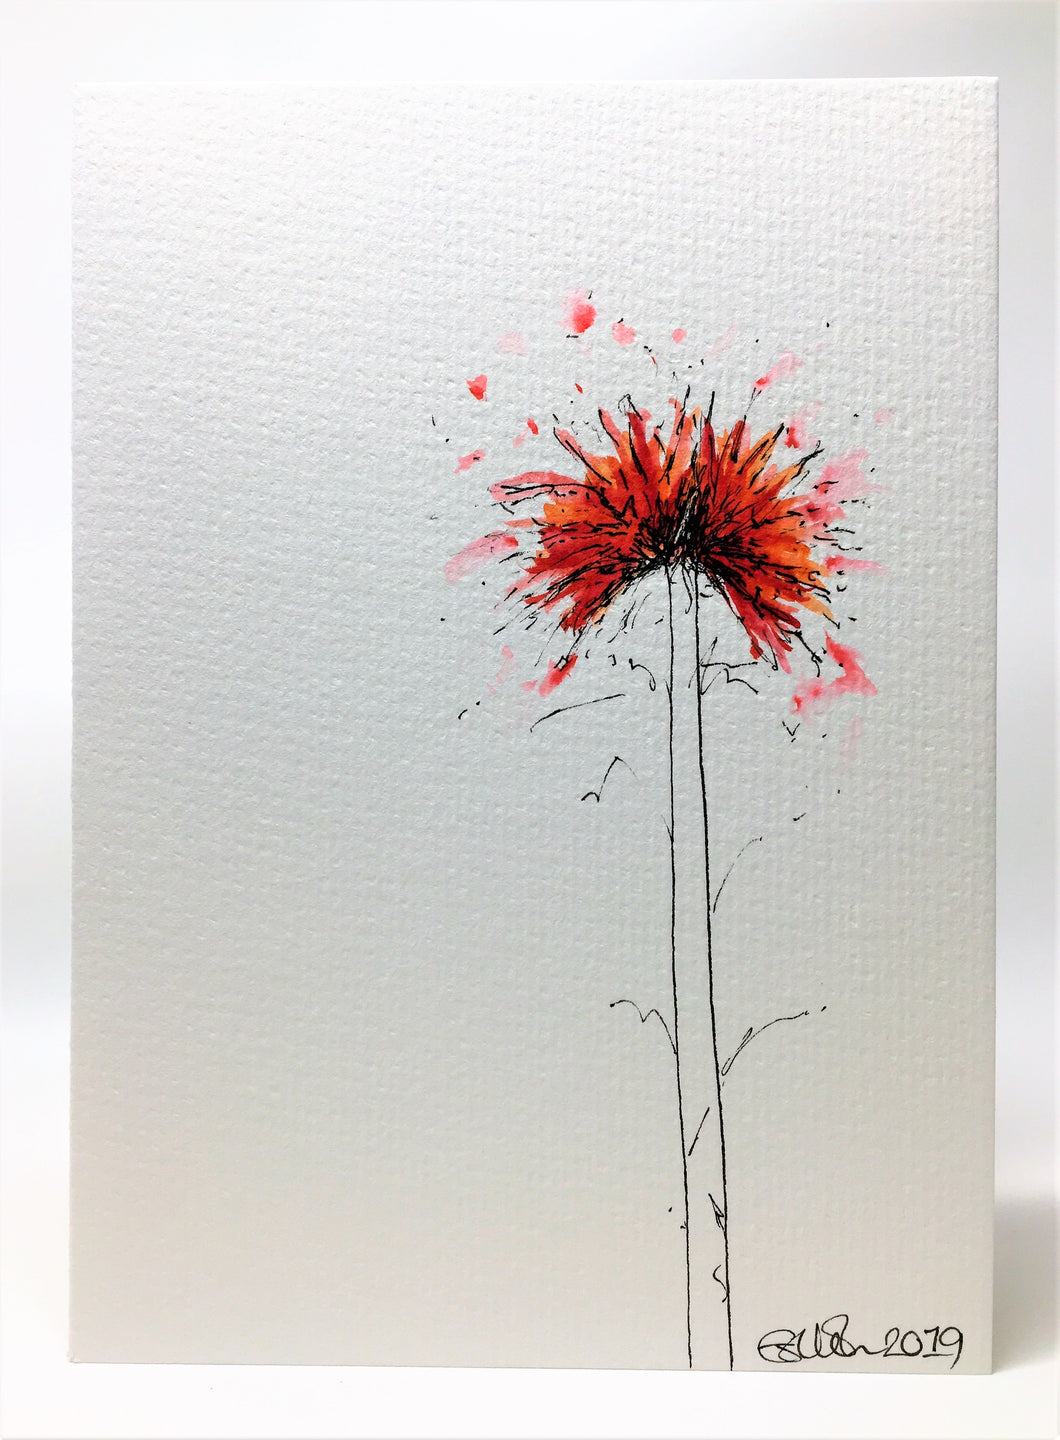 Handpainted Watercolour Greeting Card - Small Abstract Red, Orange and Pink Spiky Flowers - eDgE dEsiGn London